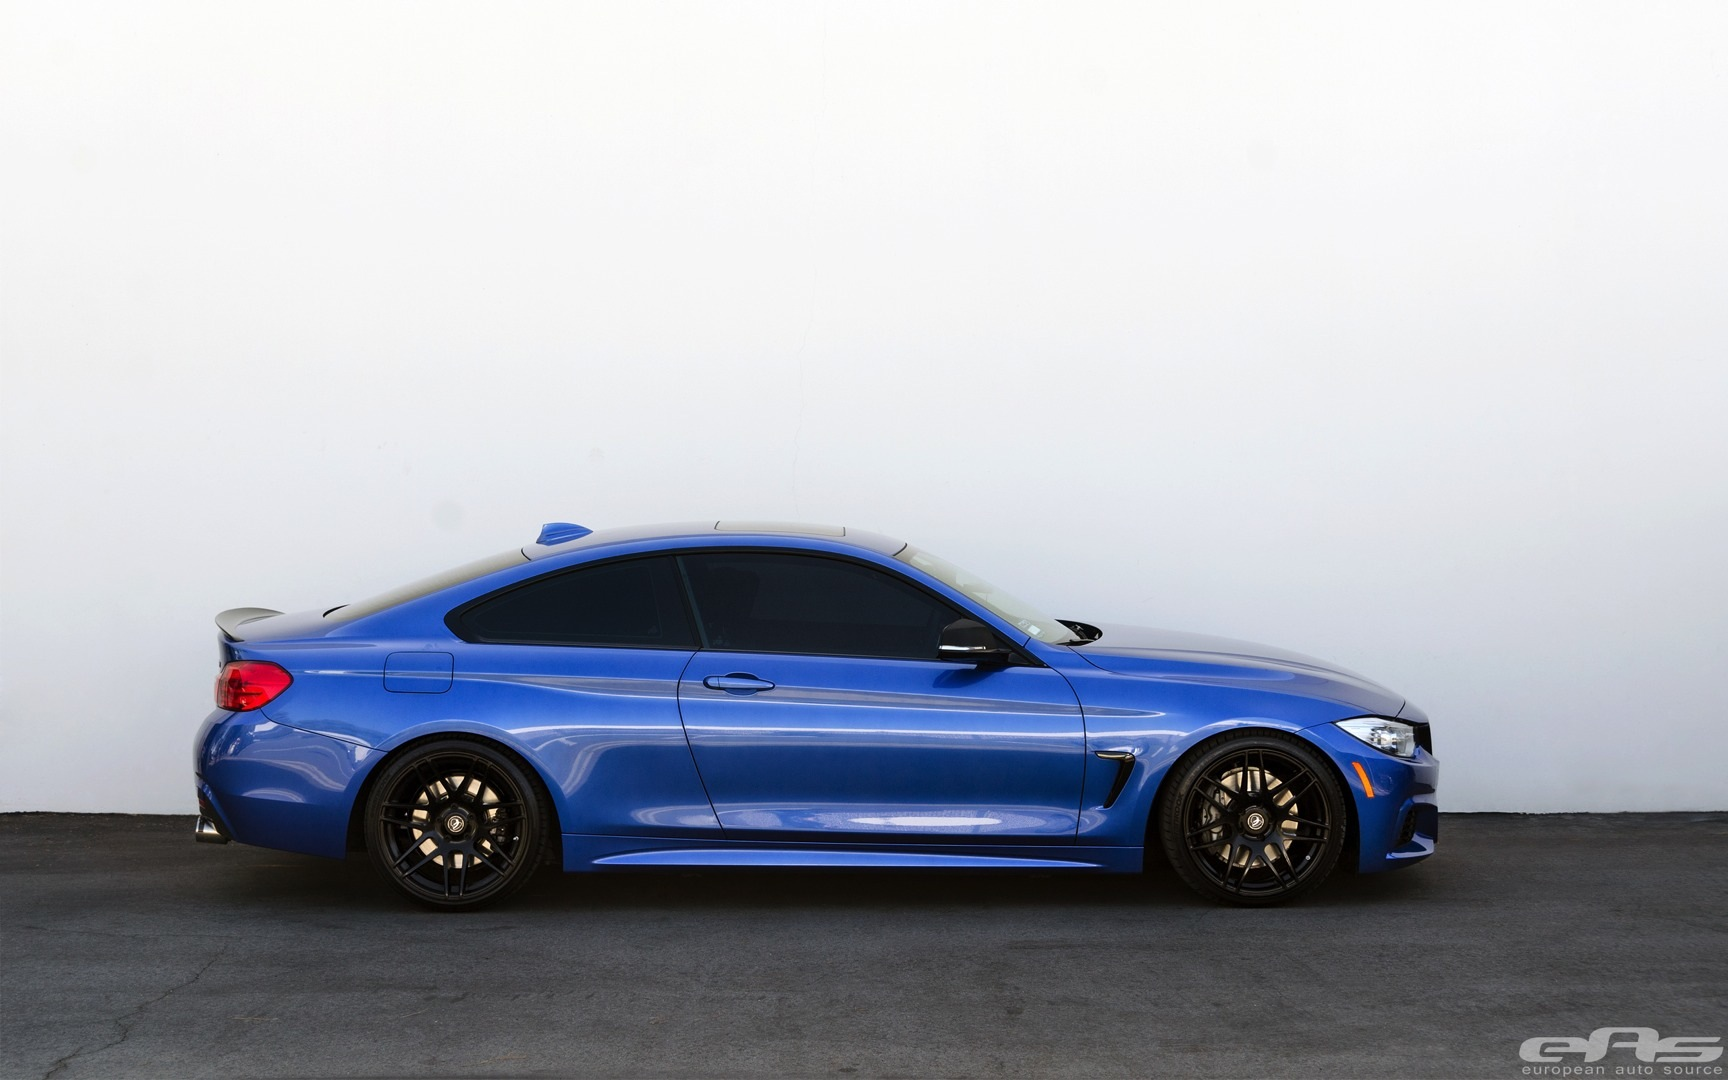 Lowered Estoril Blue Bmw 435i Is Just Right Autoevolution HD Wallpapers Download free images and photos [musssic.tk]